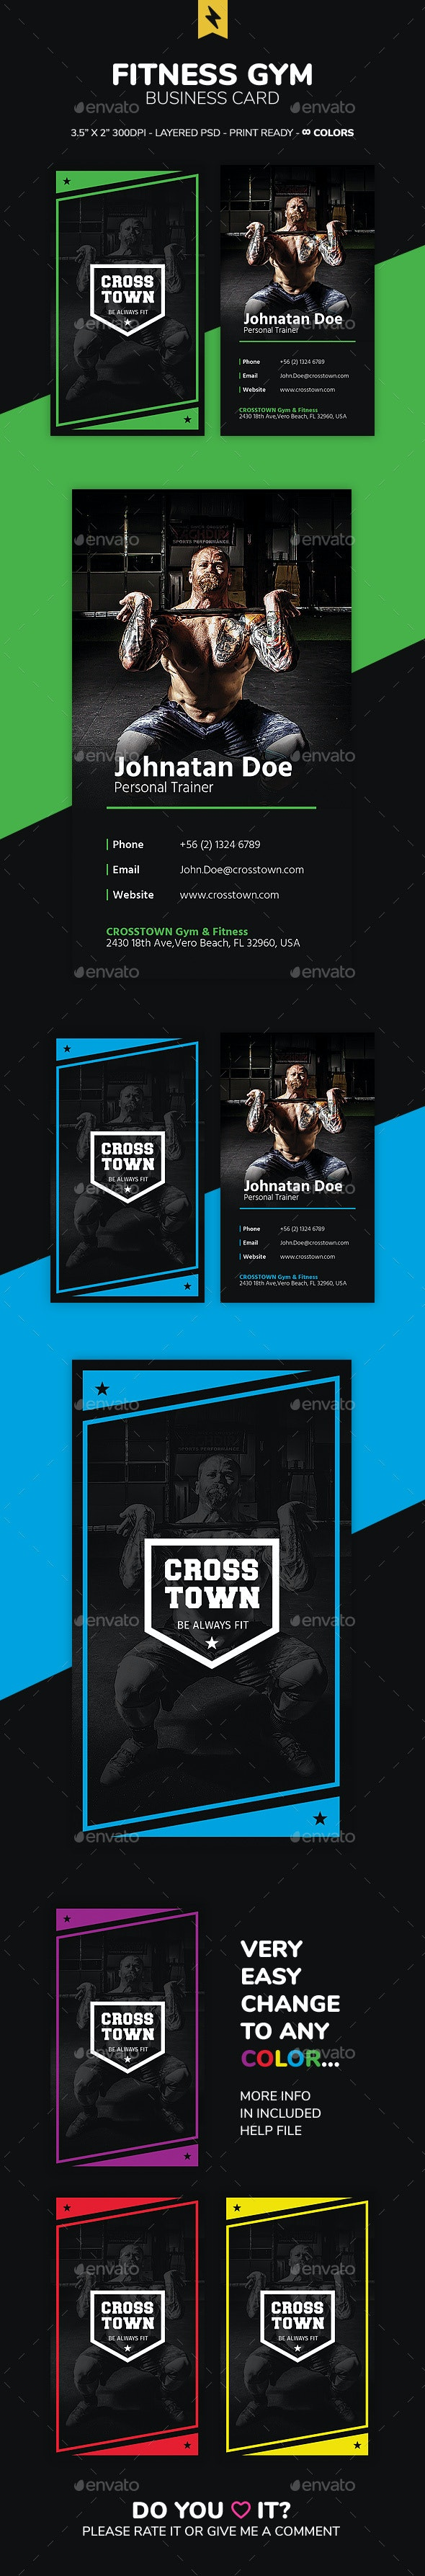 Fitness Gym Business Card - Business Cards Print Templates